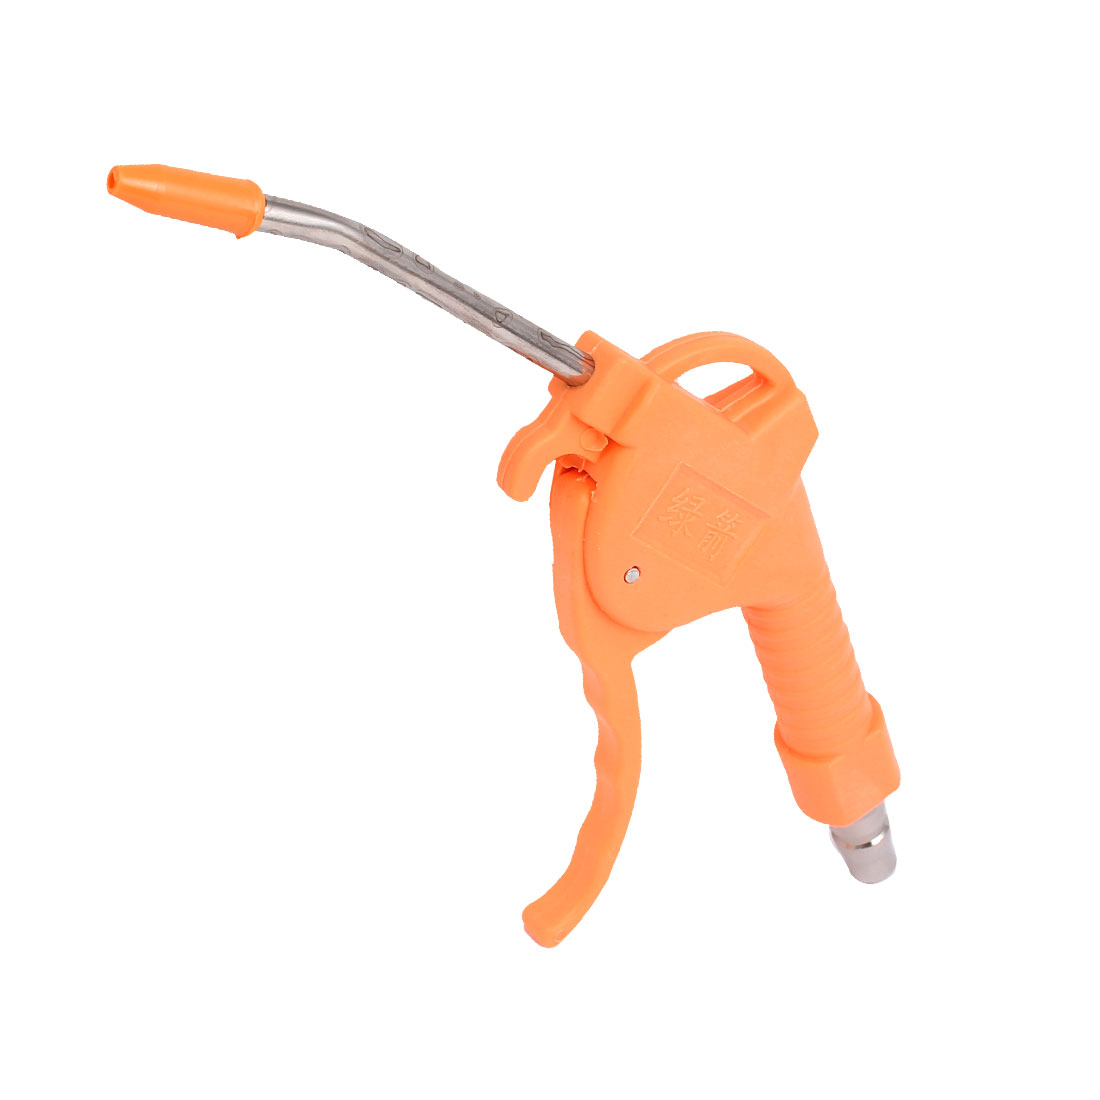 1/4BSP Orange Plastic Handle Metal Bent Nozzle High Pressure Air Blow Blower Cleaner Dust Gun Orange